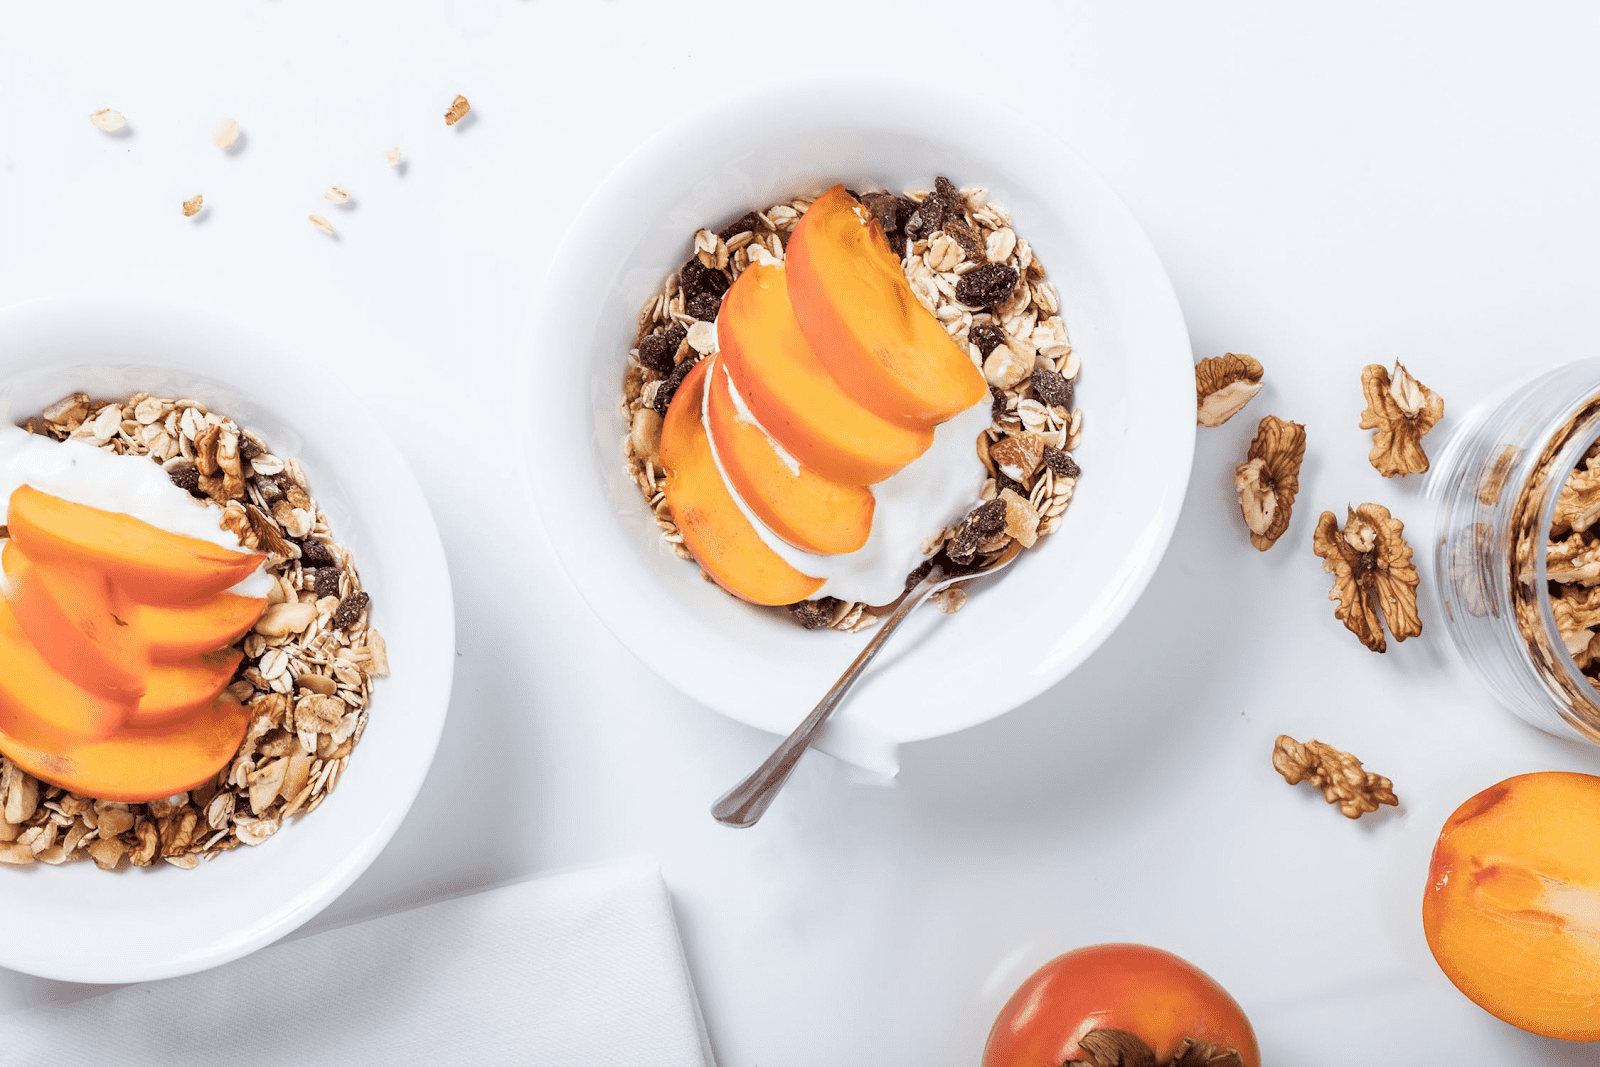 bowls of Oatmeal and muesli with peaches